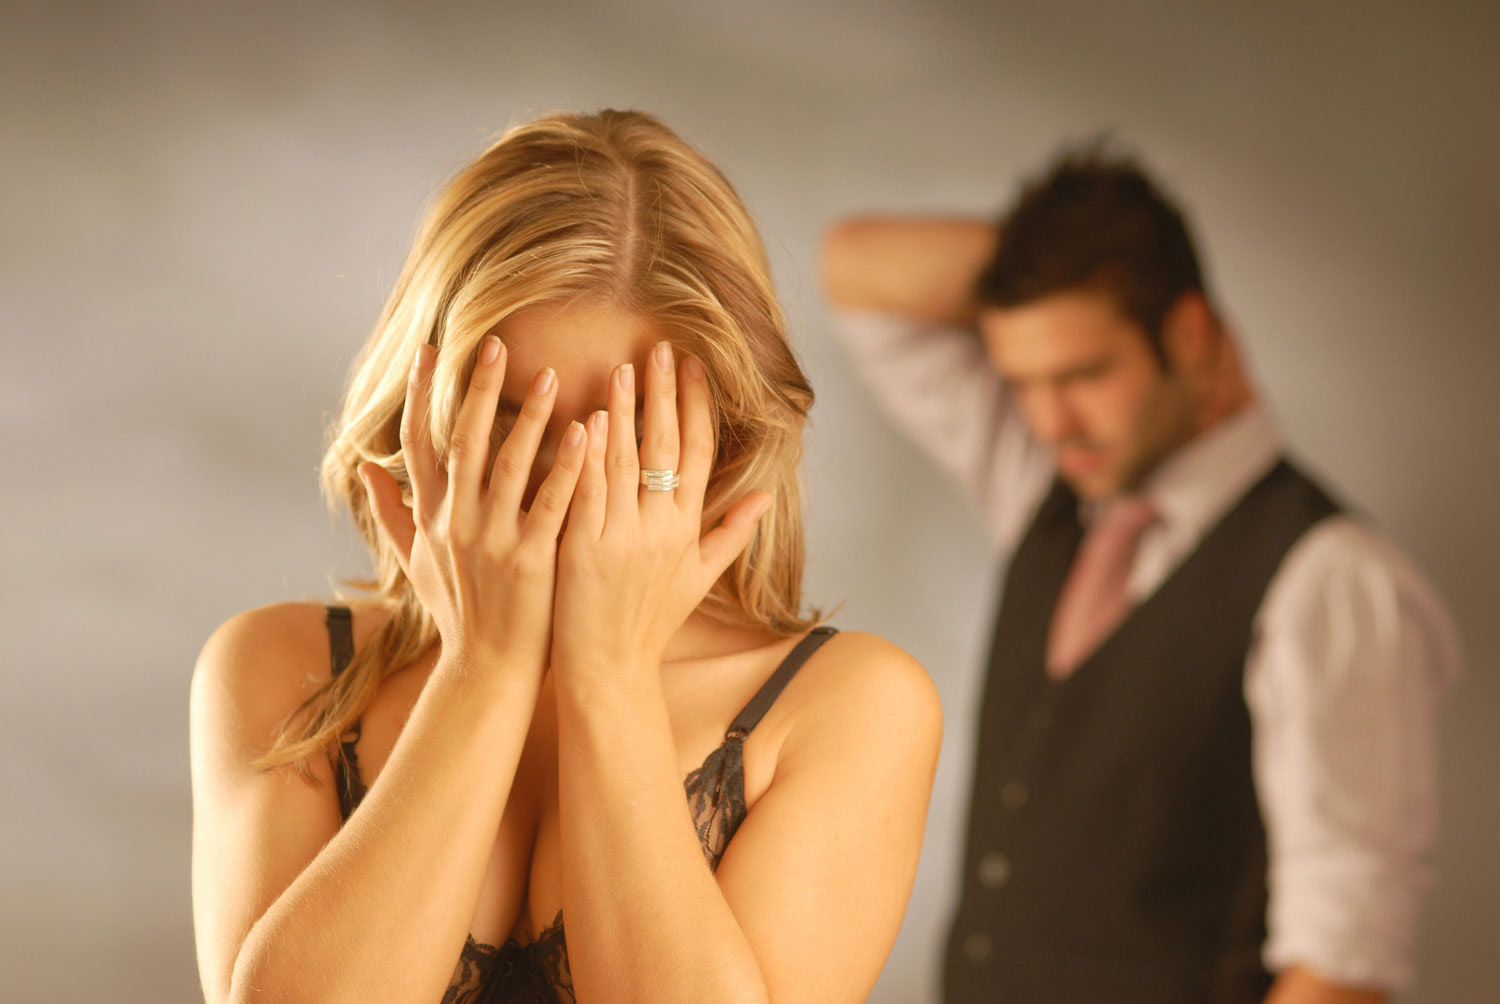 10 Ways To Repair Your Relationship After The Affair